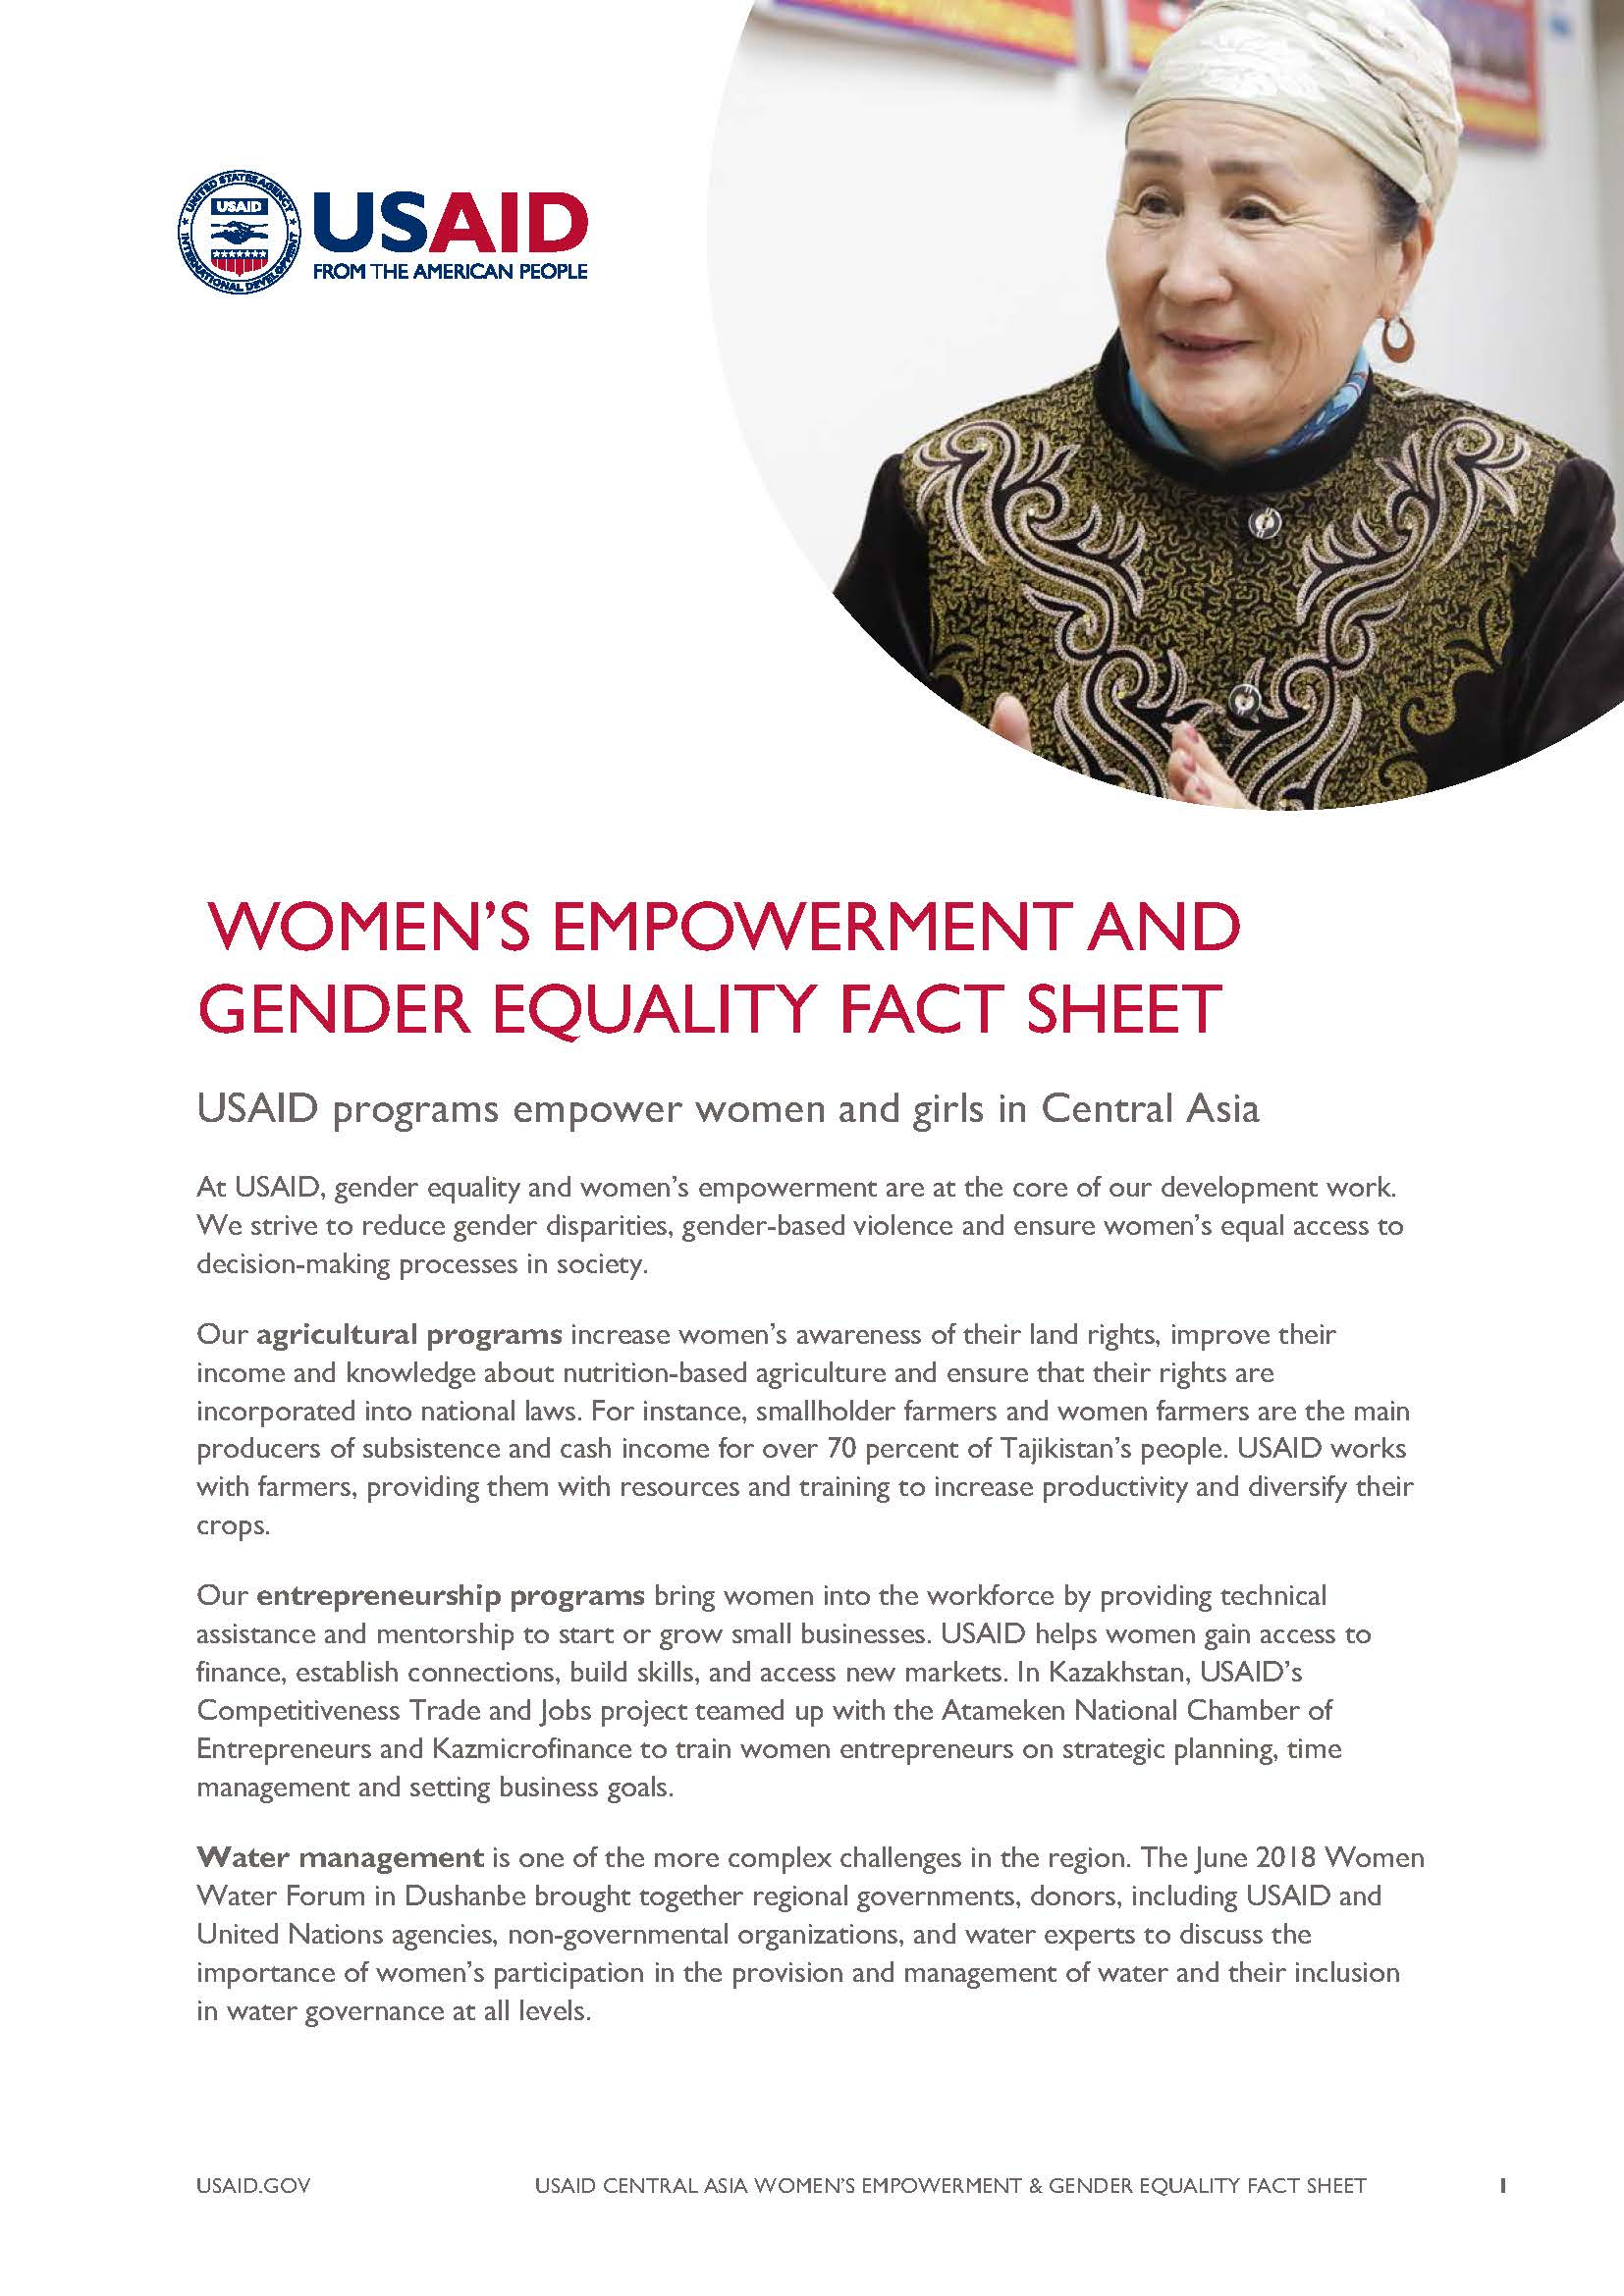 Women's Empowerment and Gender Equality Fact Sheet